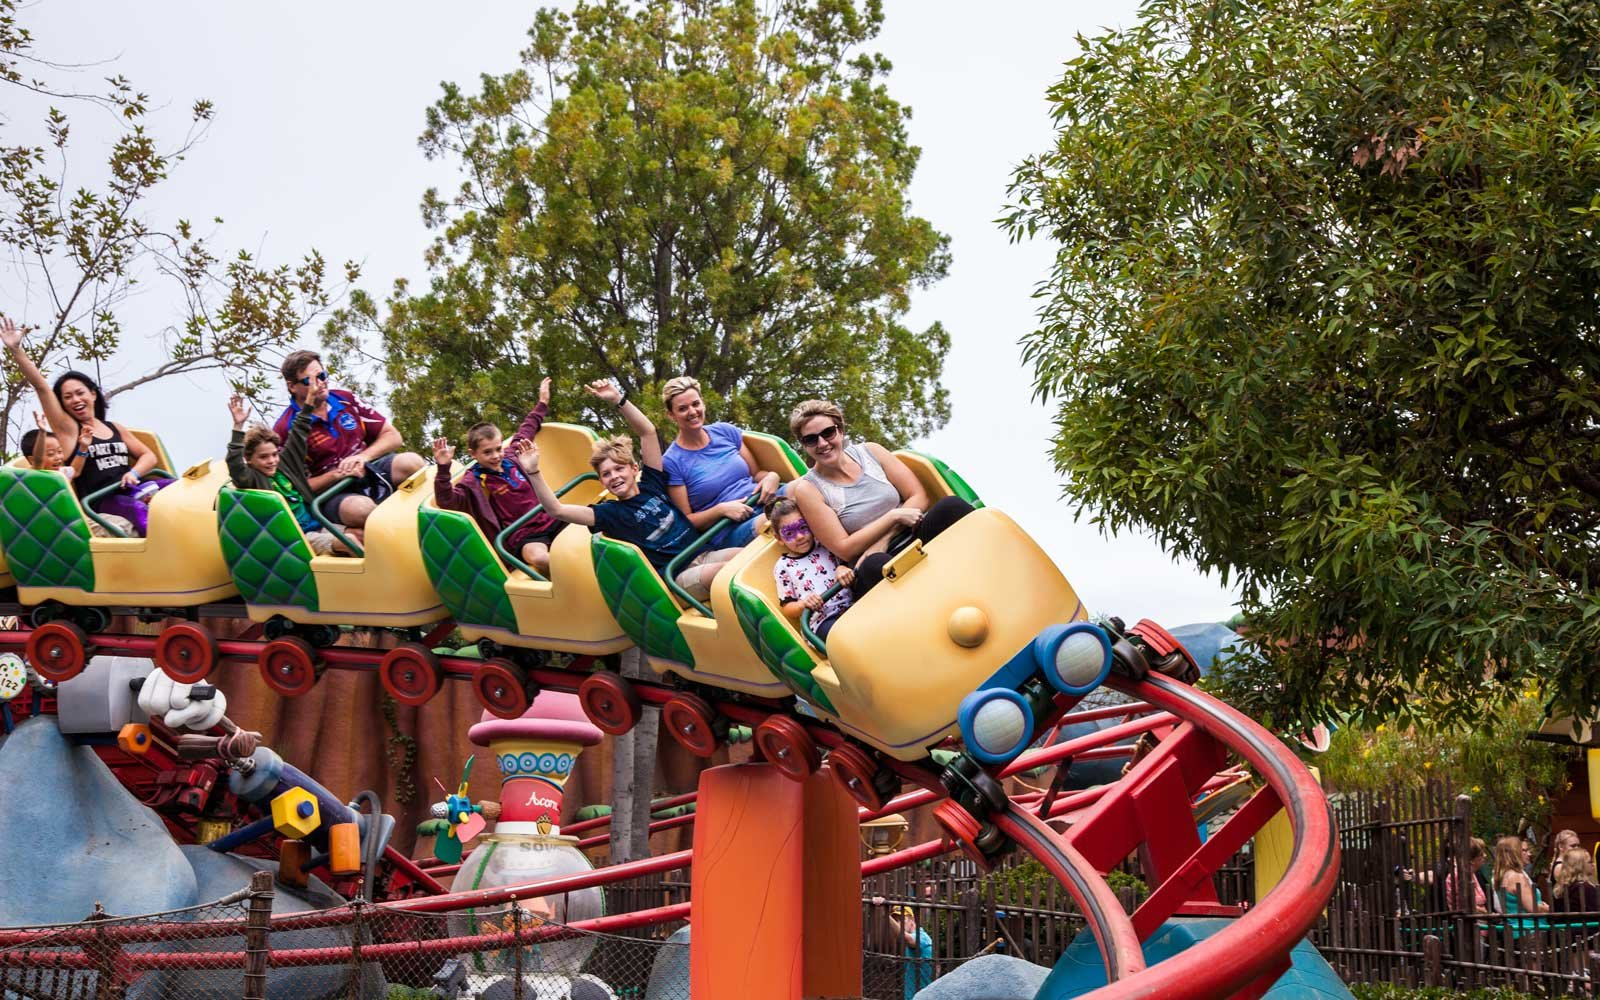 Every Ride At Disneyland Ranked